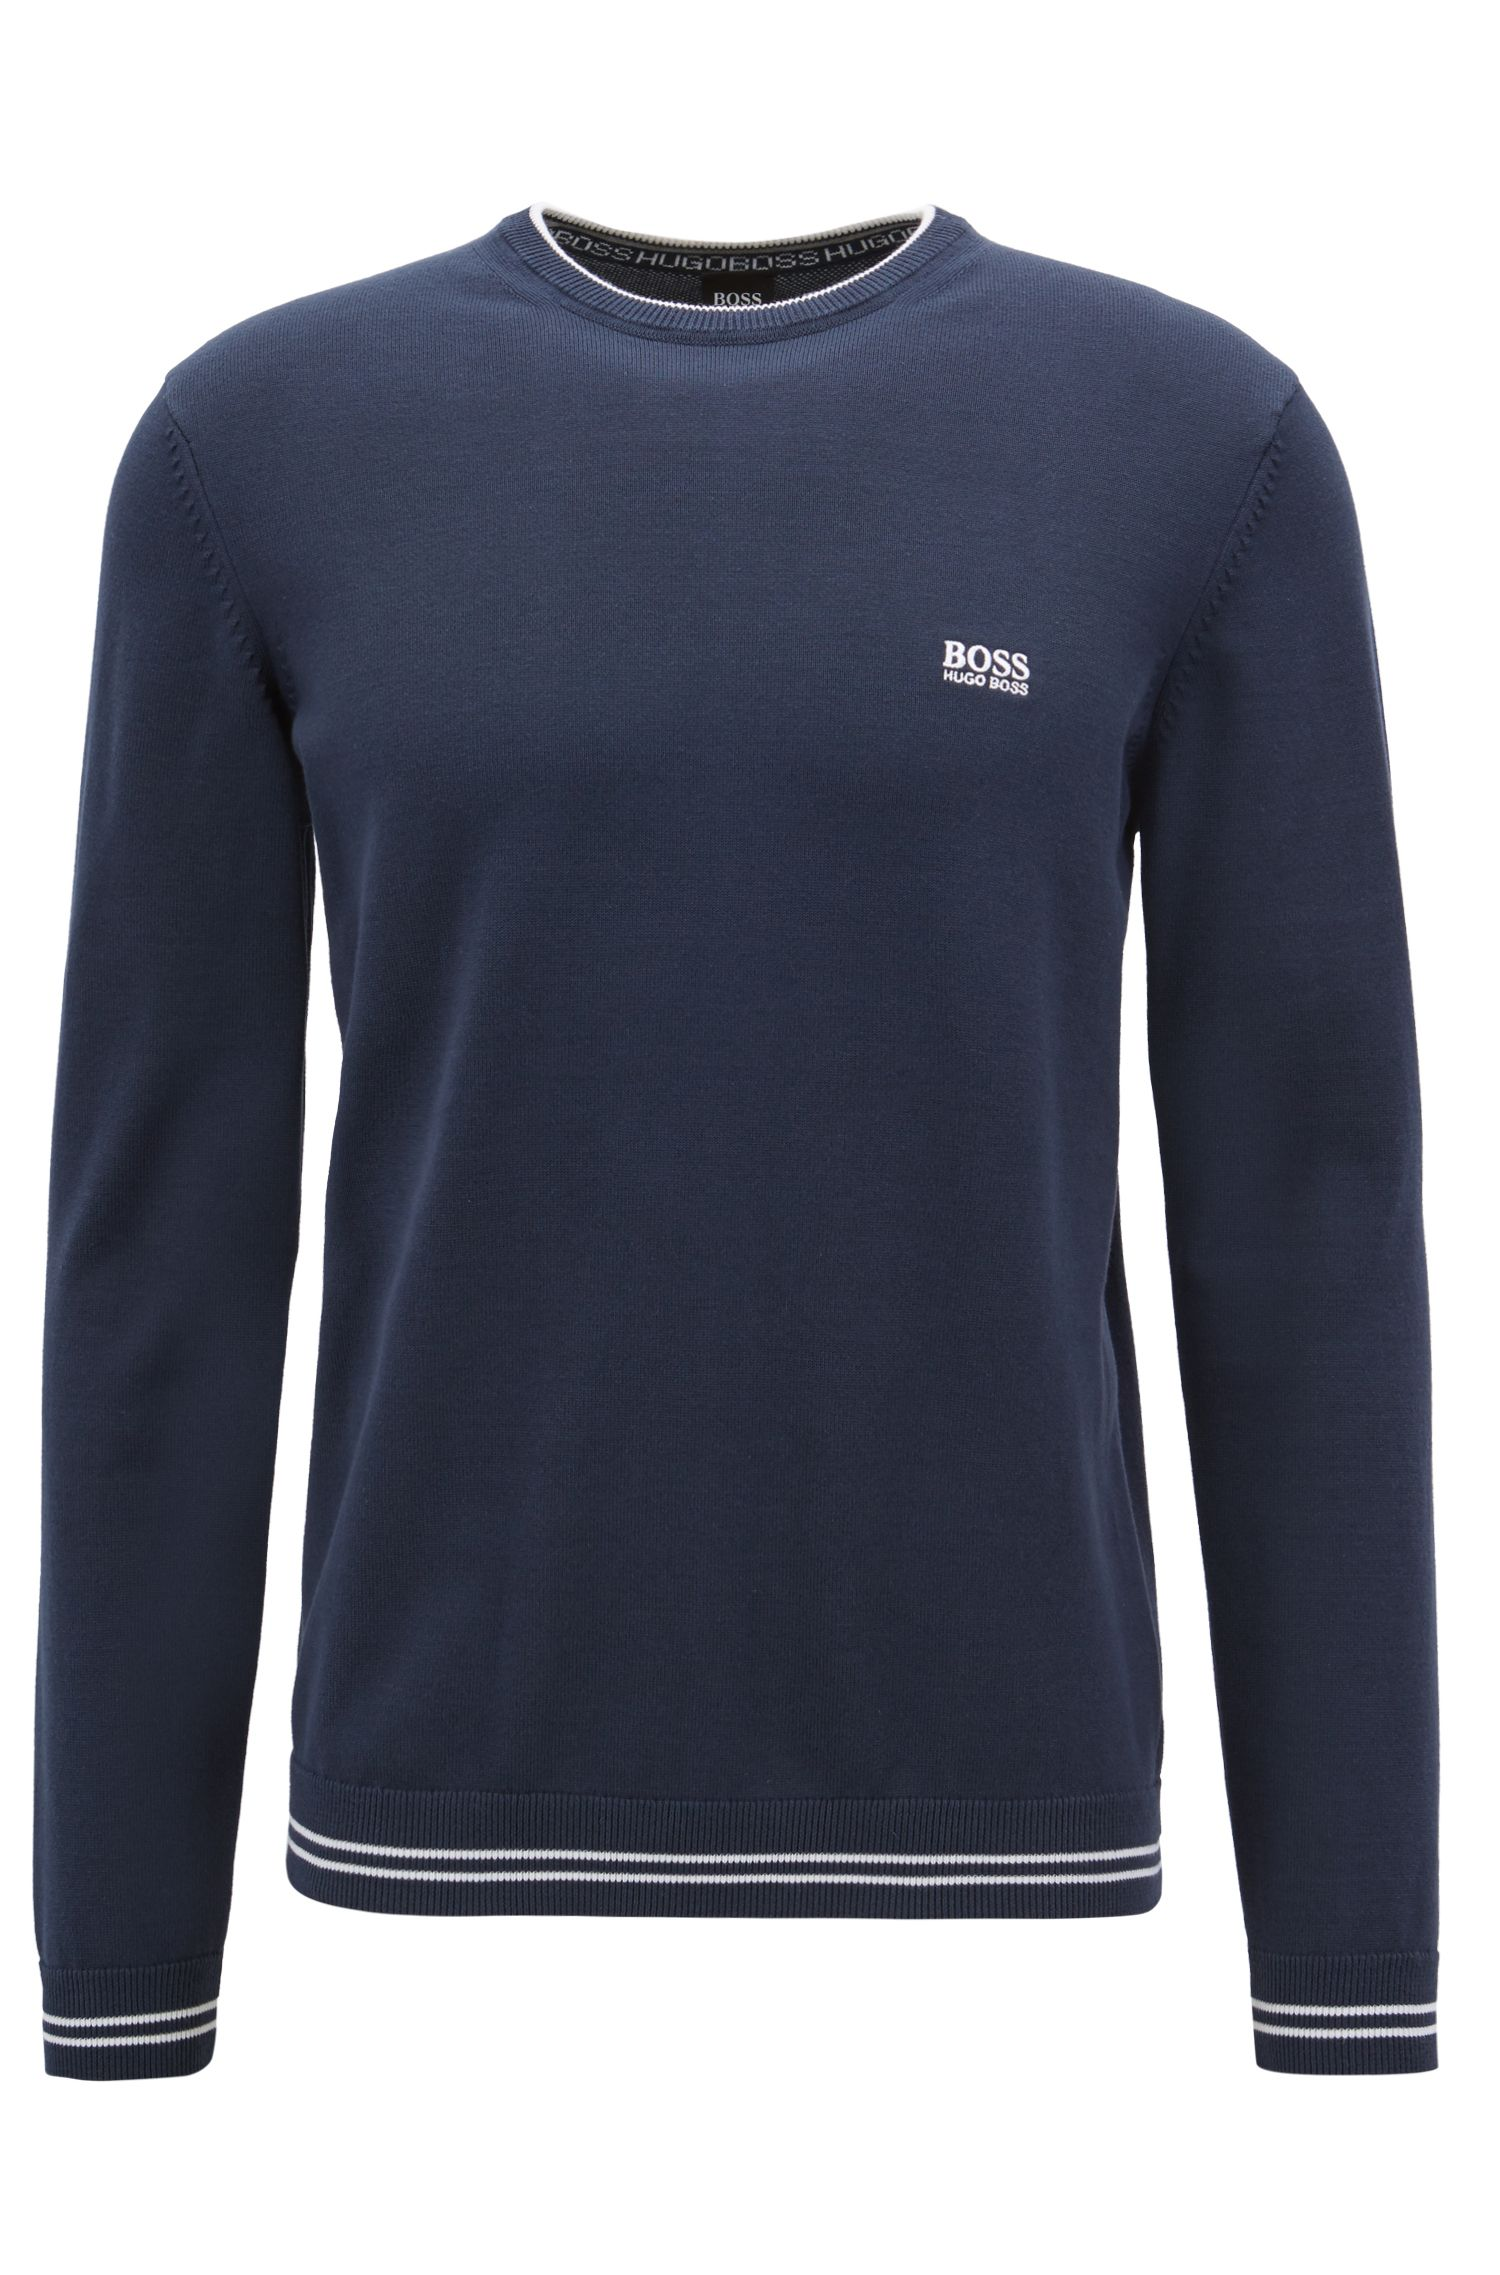 Knitted sweater with contrast tipping and logo intarsia